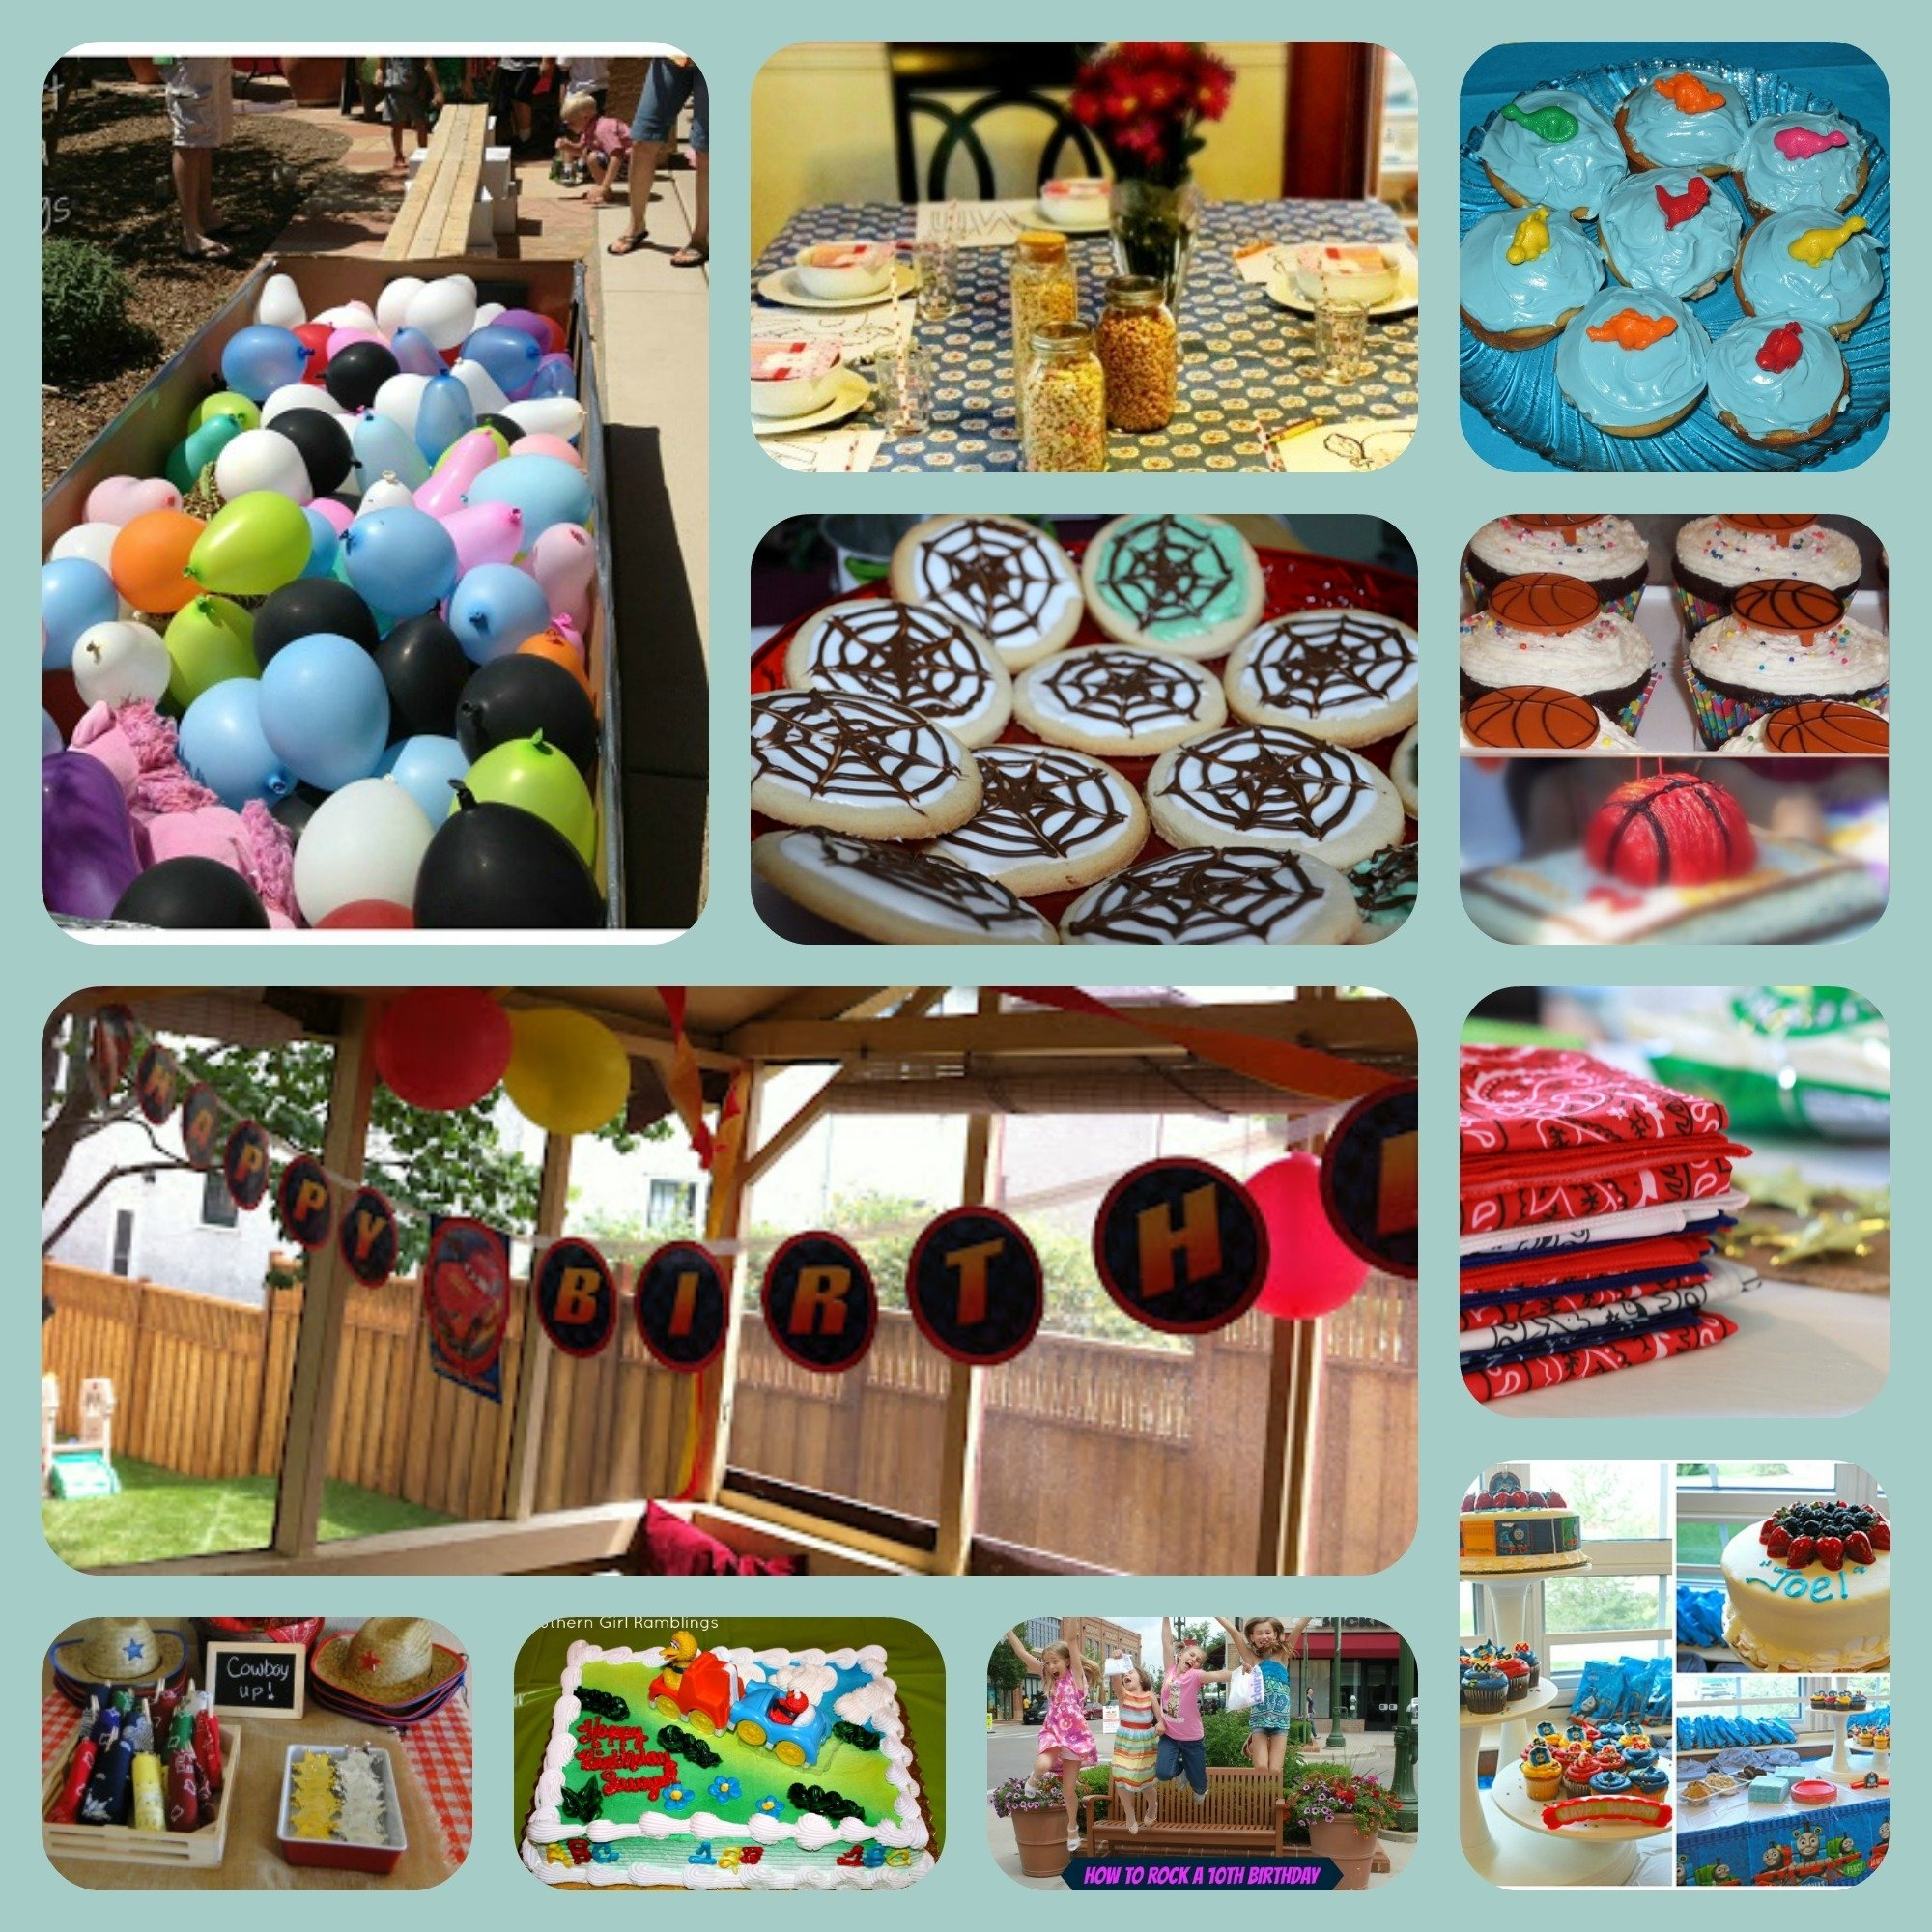 10 Nice Birthday Party Ideas For A 10 Year Old Girl 40 birthday party themes ideas tutorials and printables 4 2020